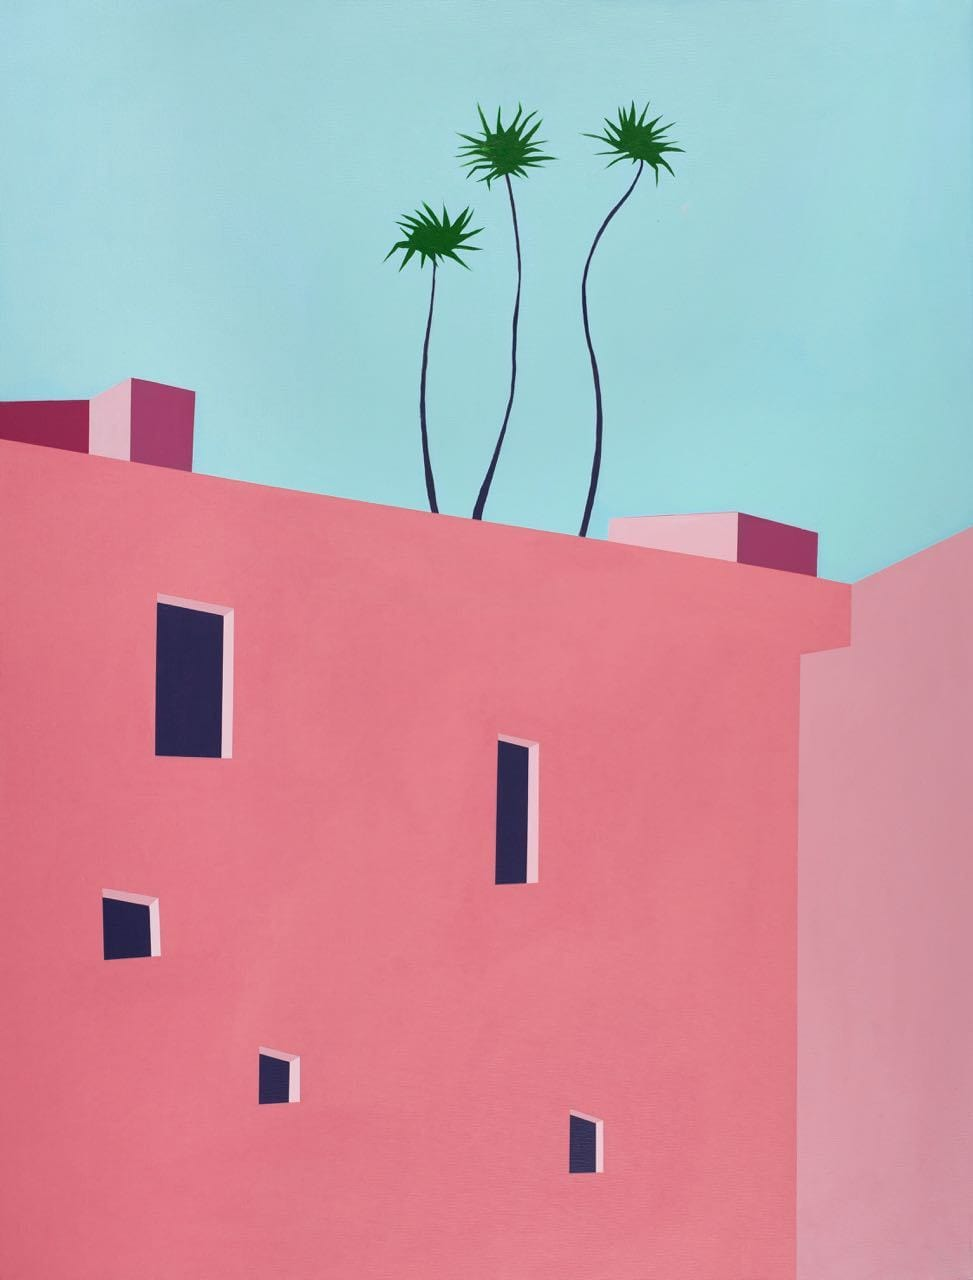 Marrakech - Limited Edition Print